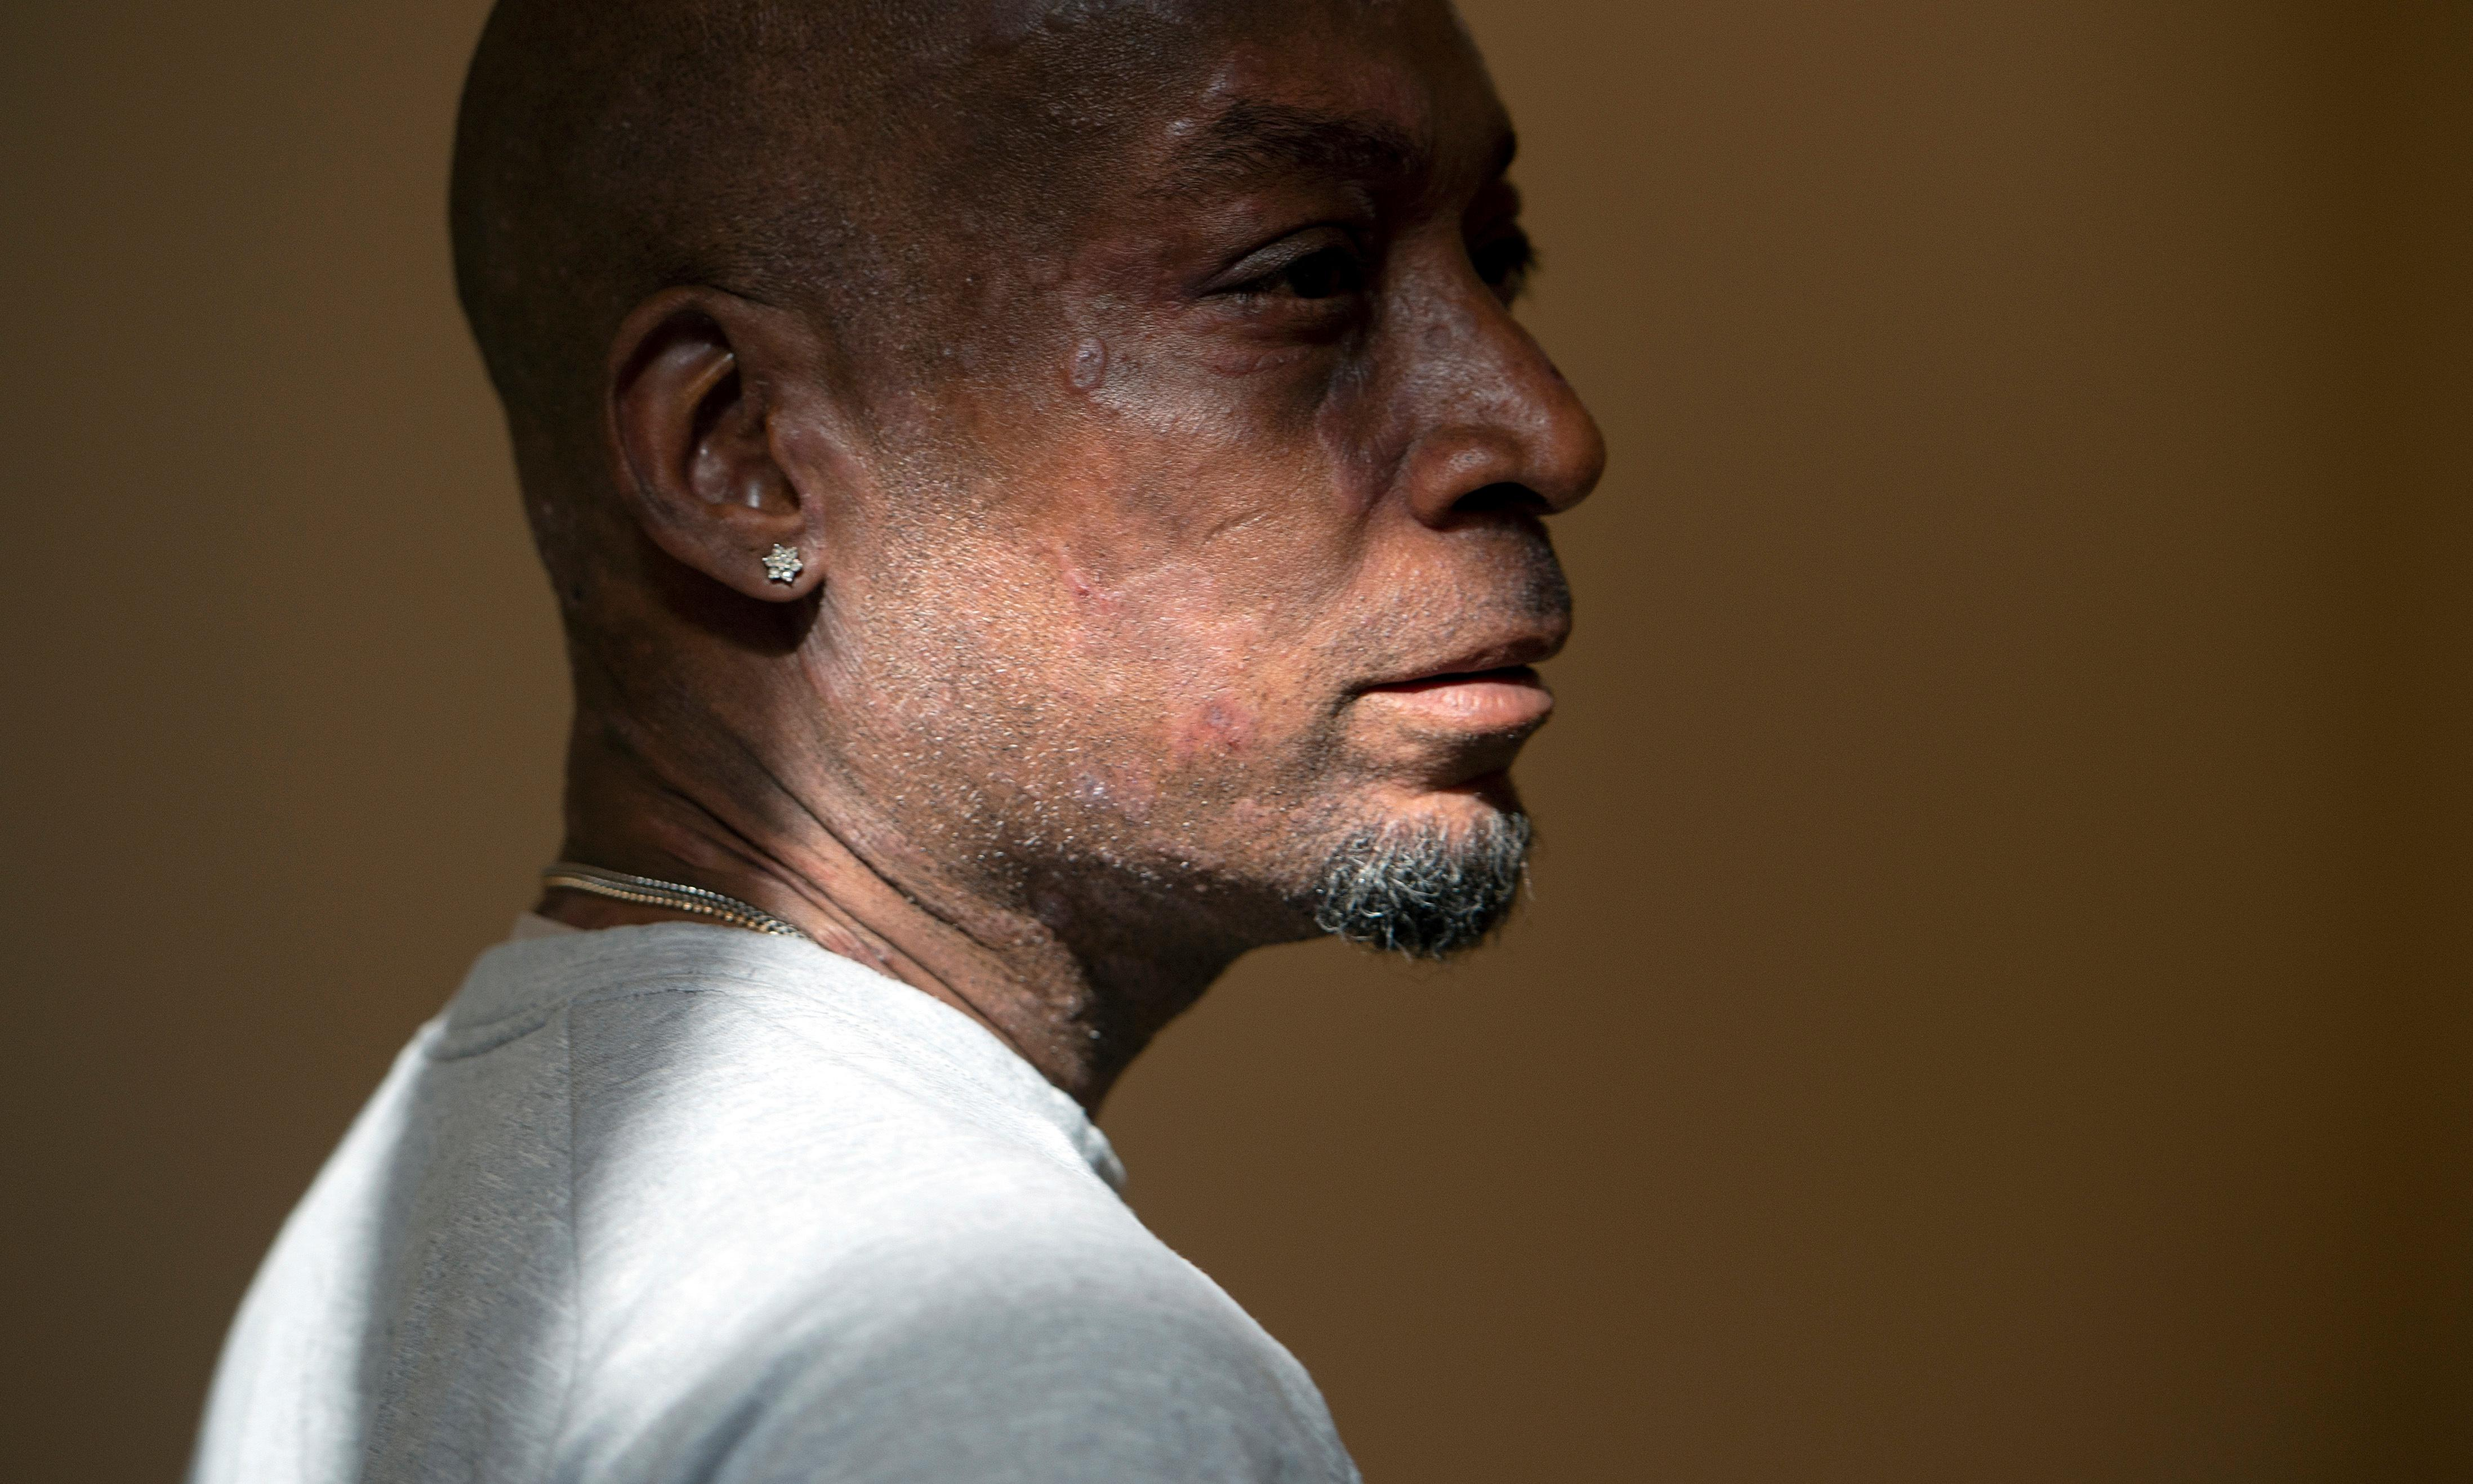 The man who beat Monsanto: 'They have to pay for not being honest'